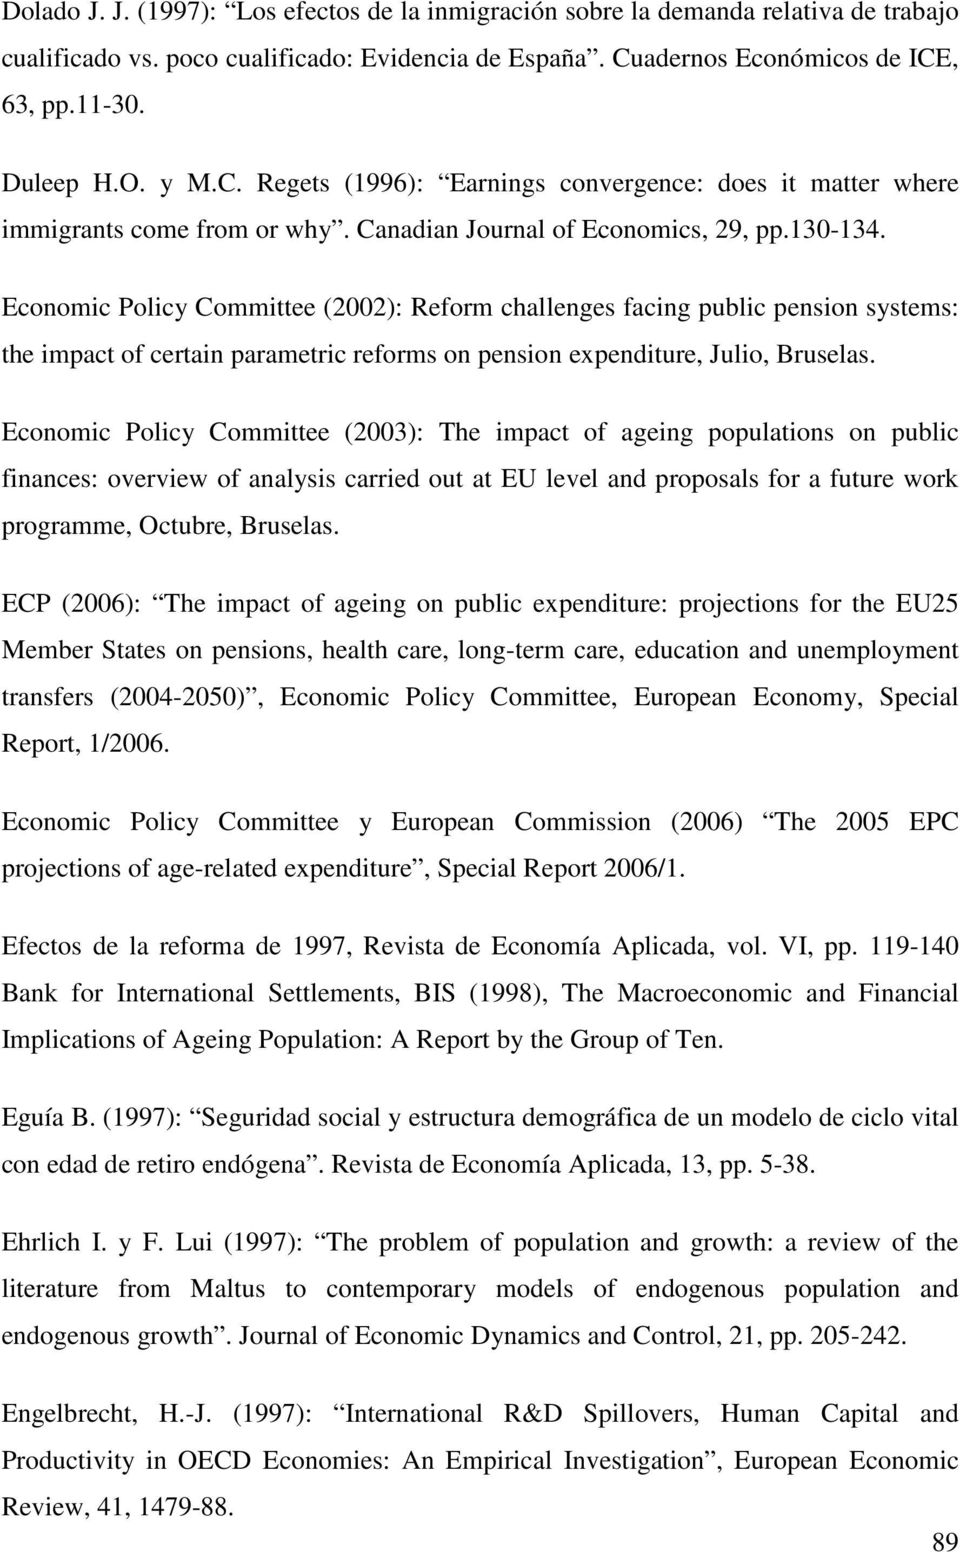 Economic Policy Committee (2002): Reform challenges facing public pension systems: the impact of certain parametric reforms on pension expenditure, Julio, Bruselas.